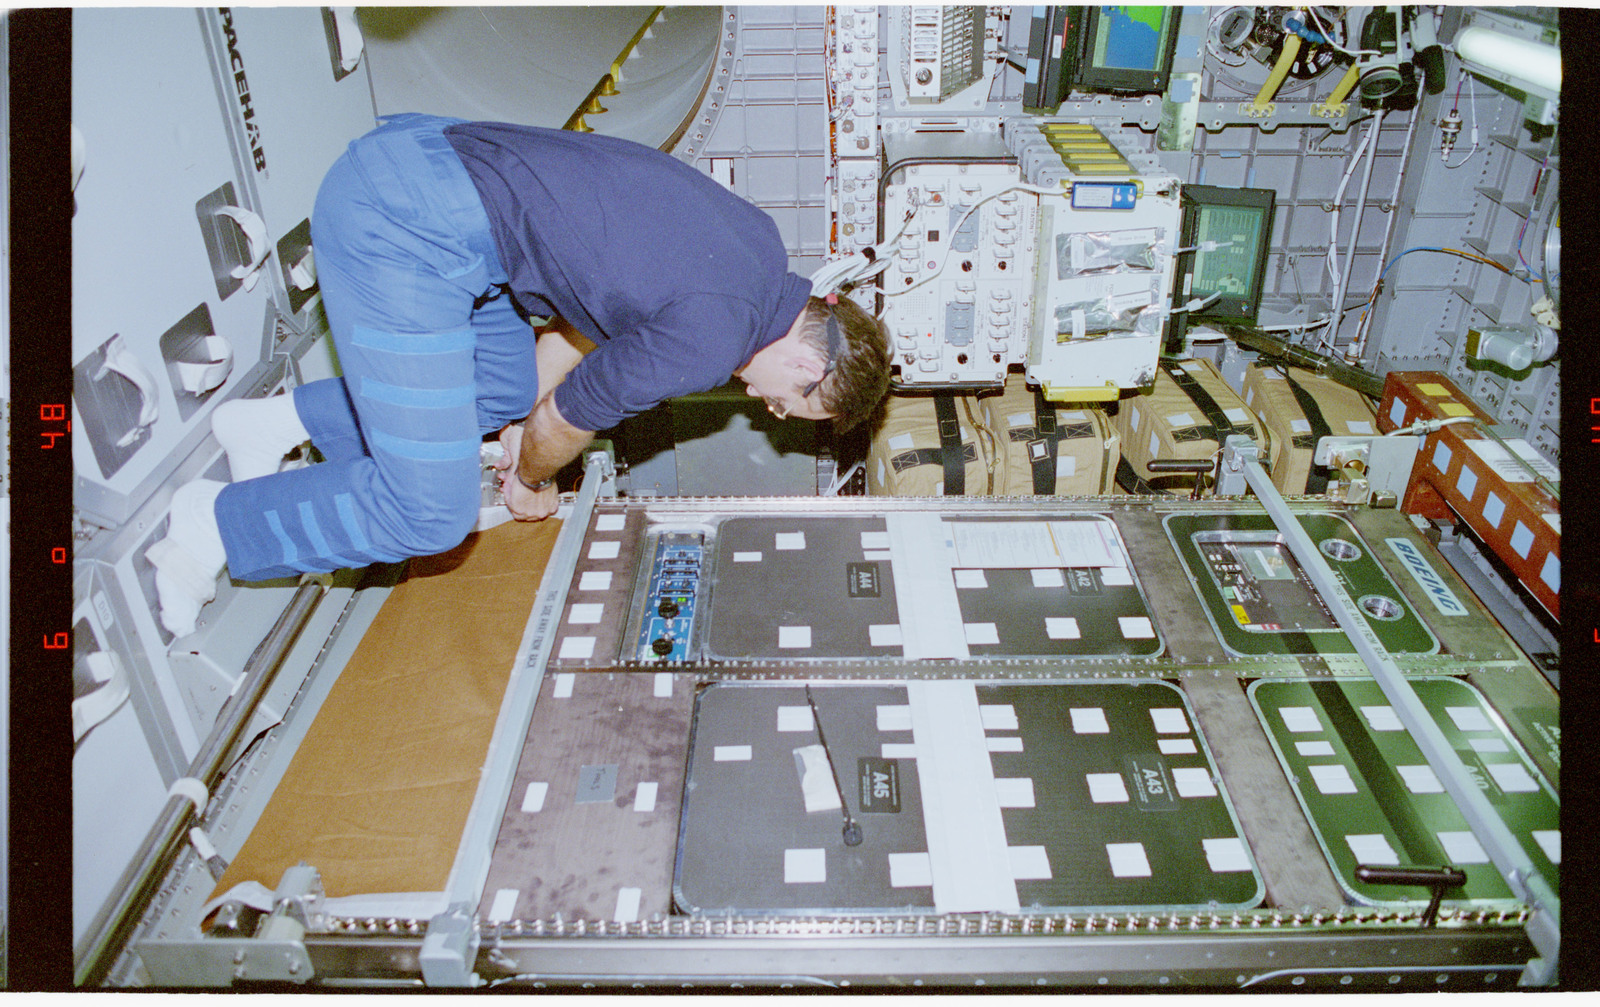 STS079-302-023 - STS-079 - RME 1313 - Active Rack Isolation System being locked down